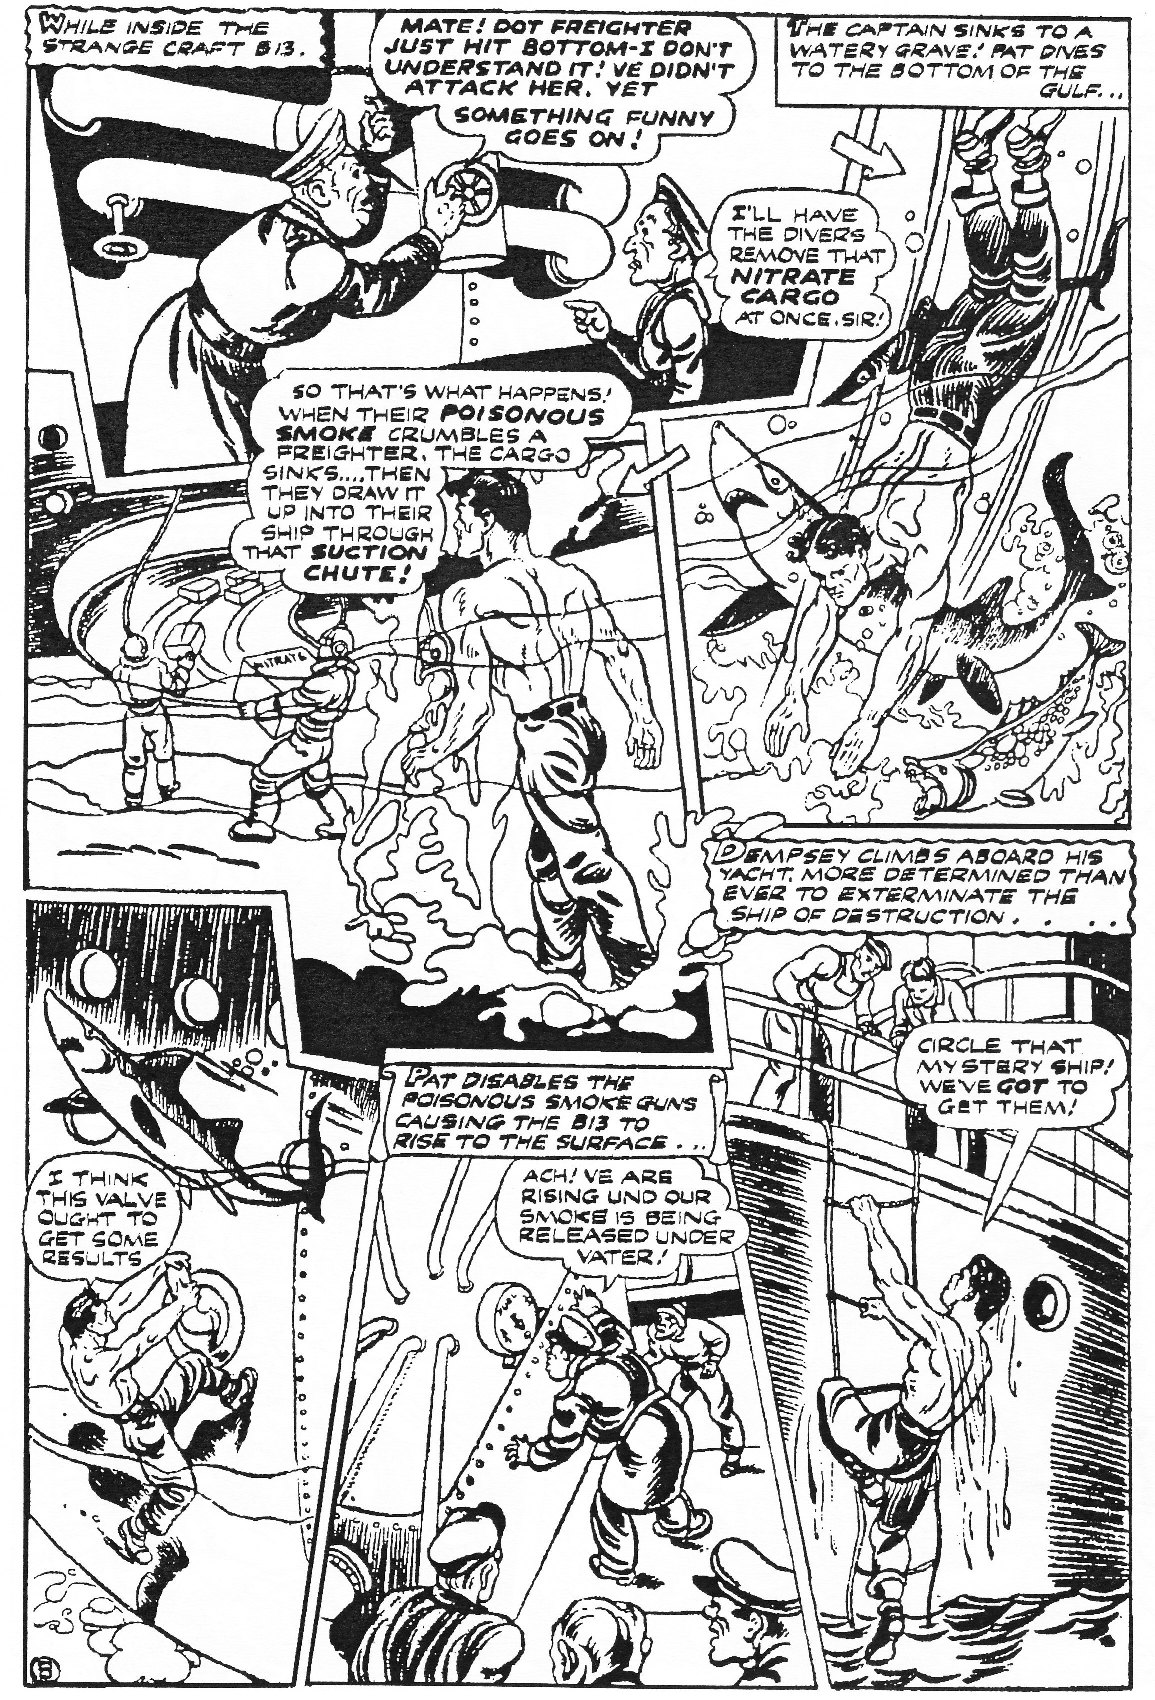 Read online Men of Mystery Comics comic -  Issue #77 - 48